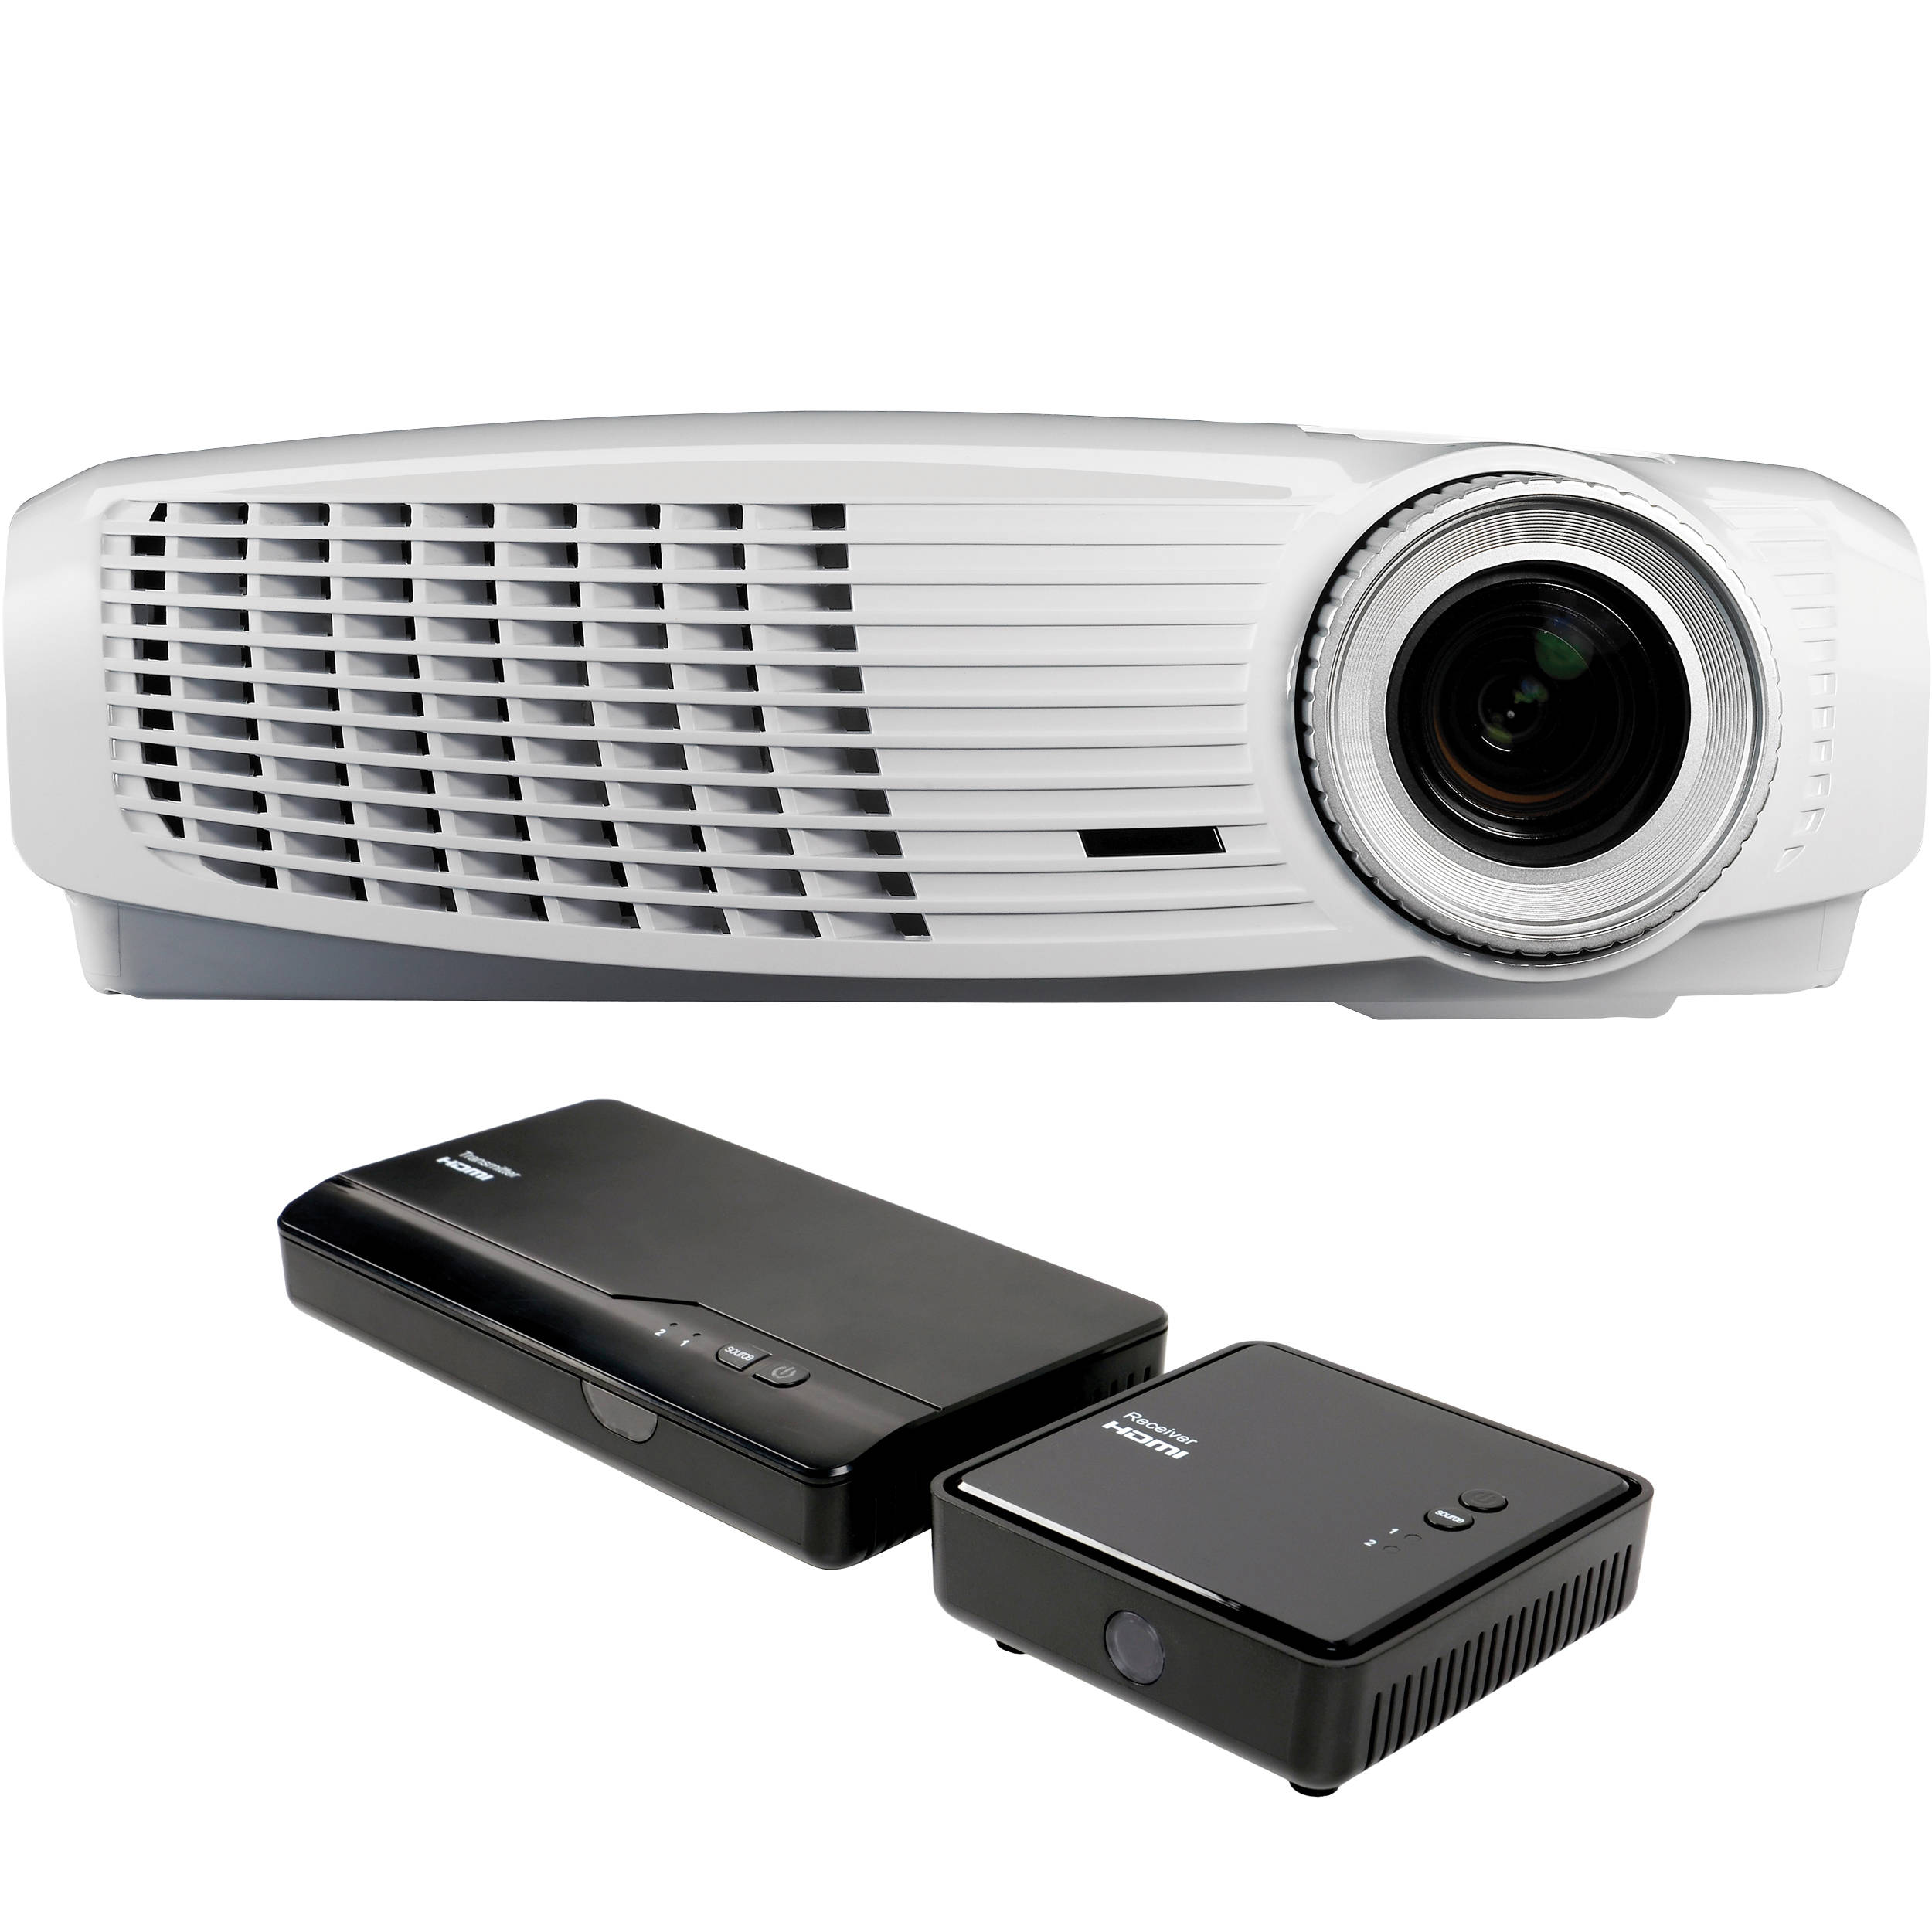 Optoma technology hd25lv whd full hd dlp home hd25 lv whd b h for Hd projector